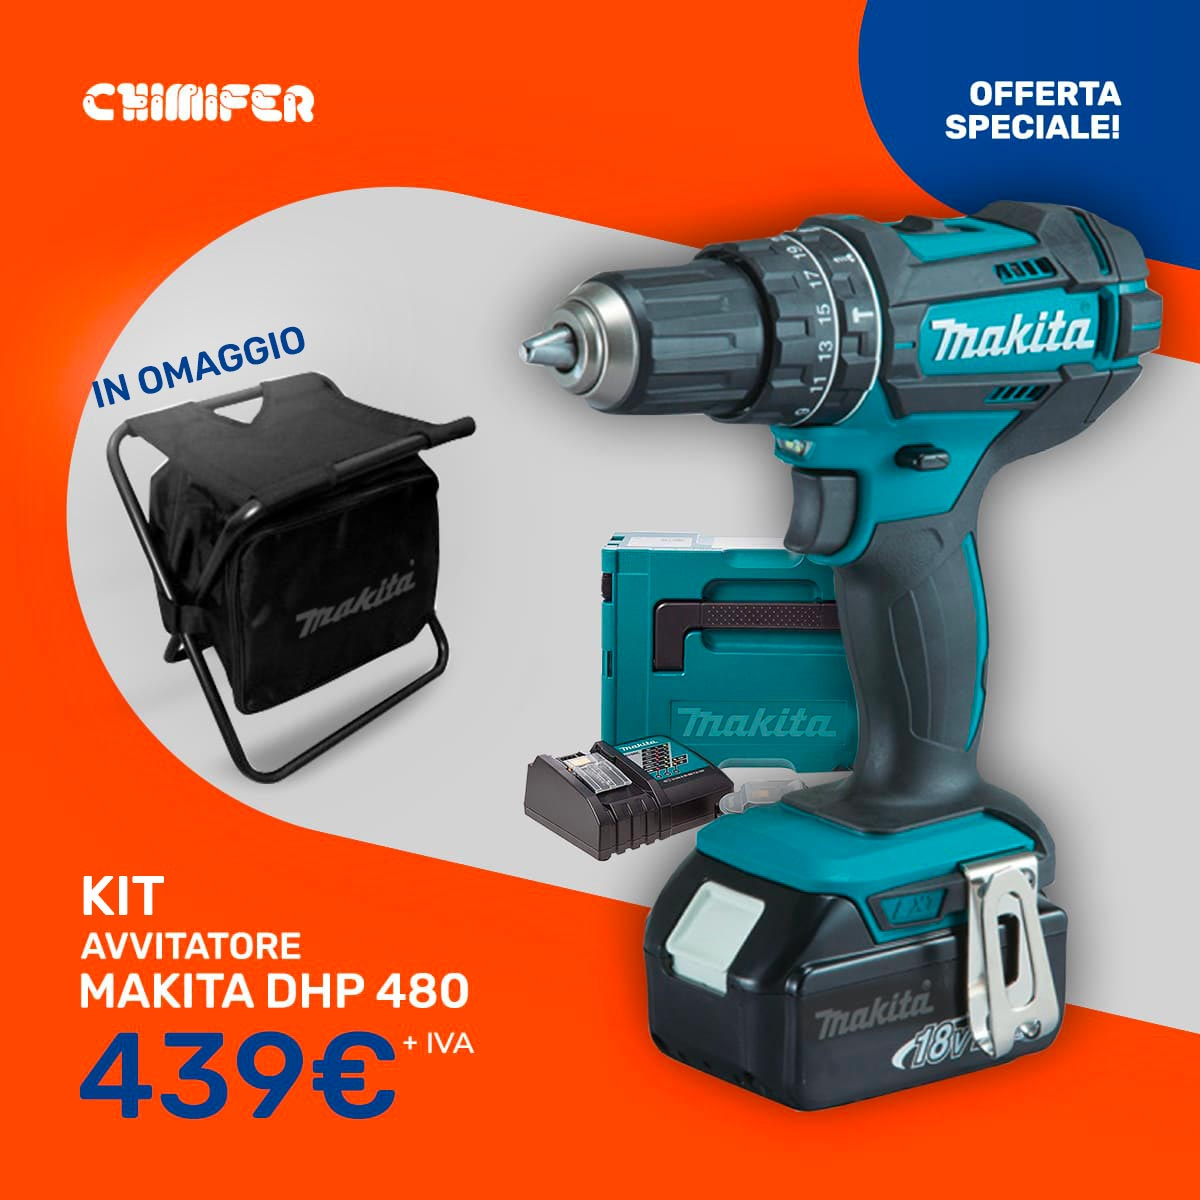 kit-avvitatore-makita-dhp-480-offerta-chimifer